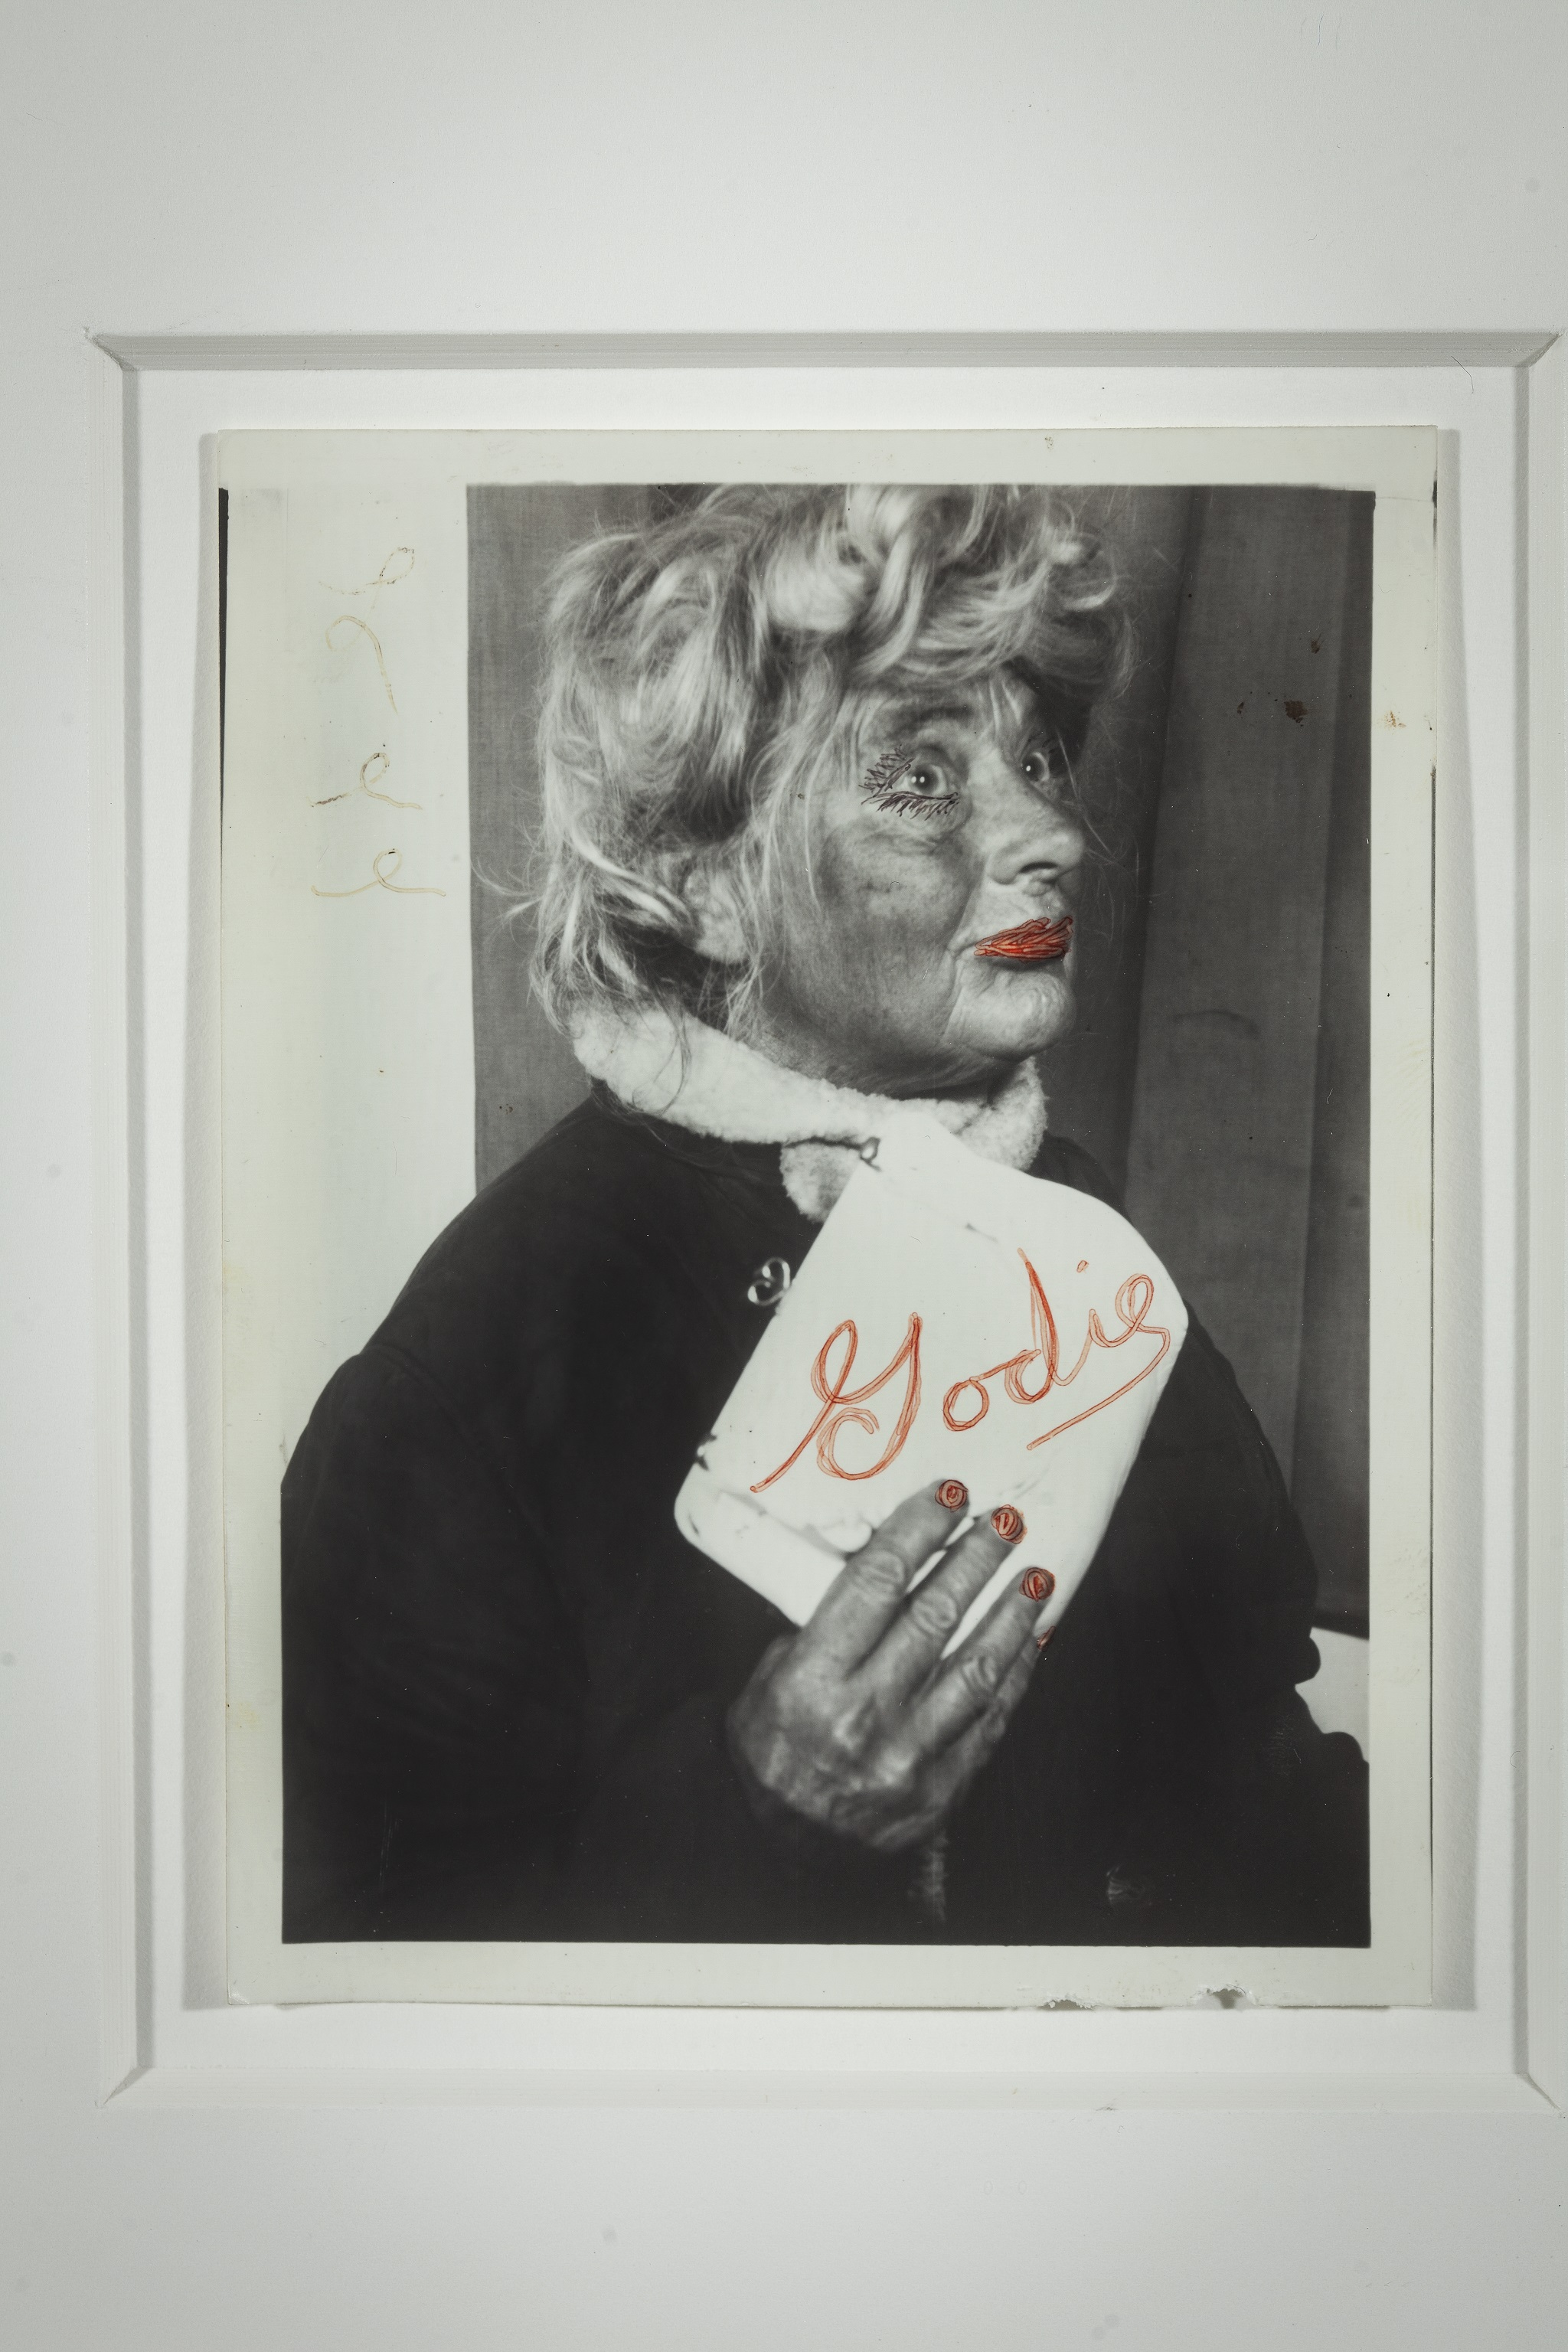 Lee Godie, Untitled, n.d.; gelatin silver print; 5 x 3 3/4 in. Collection of John and Teenuh Foster, Saint Louis, MO.